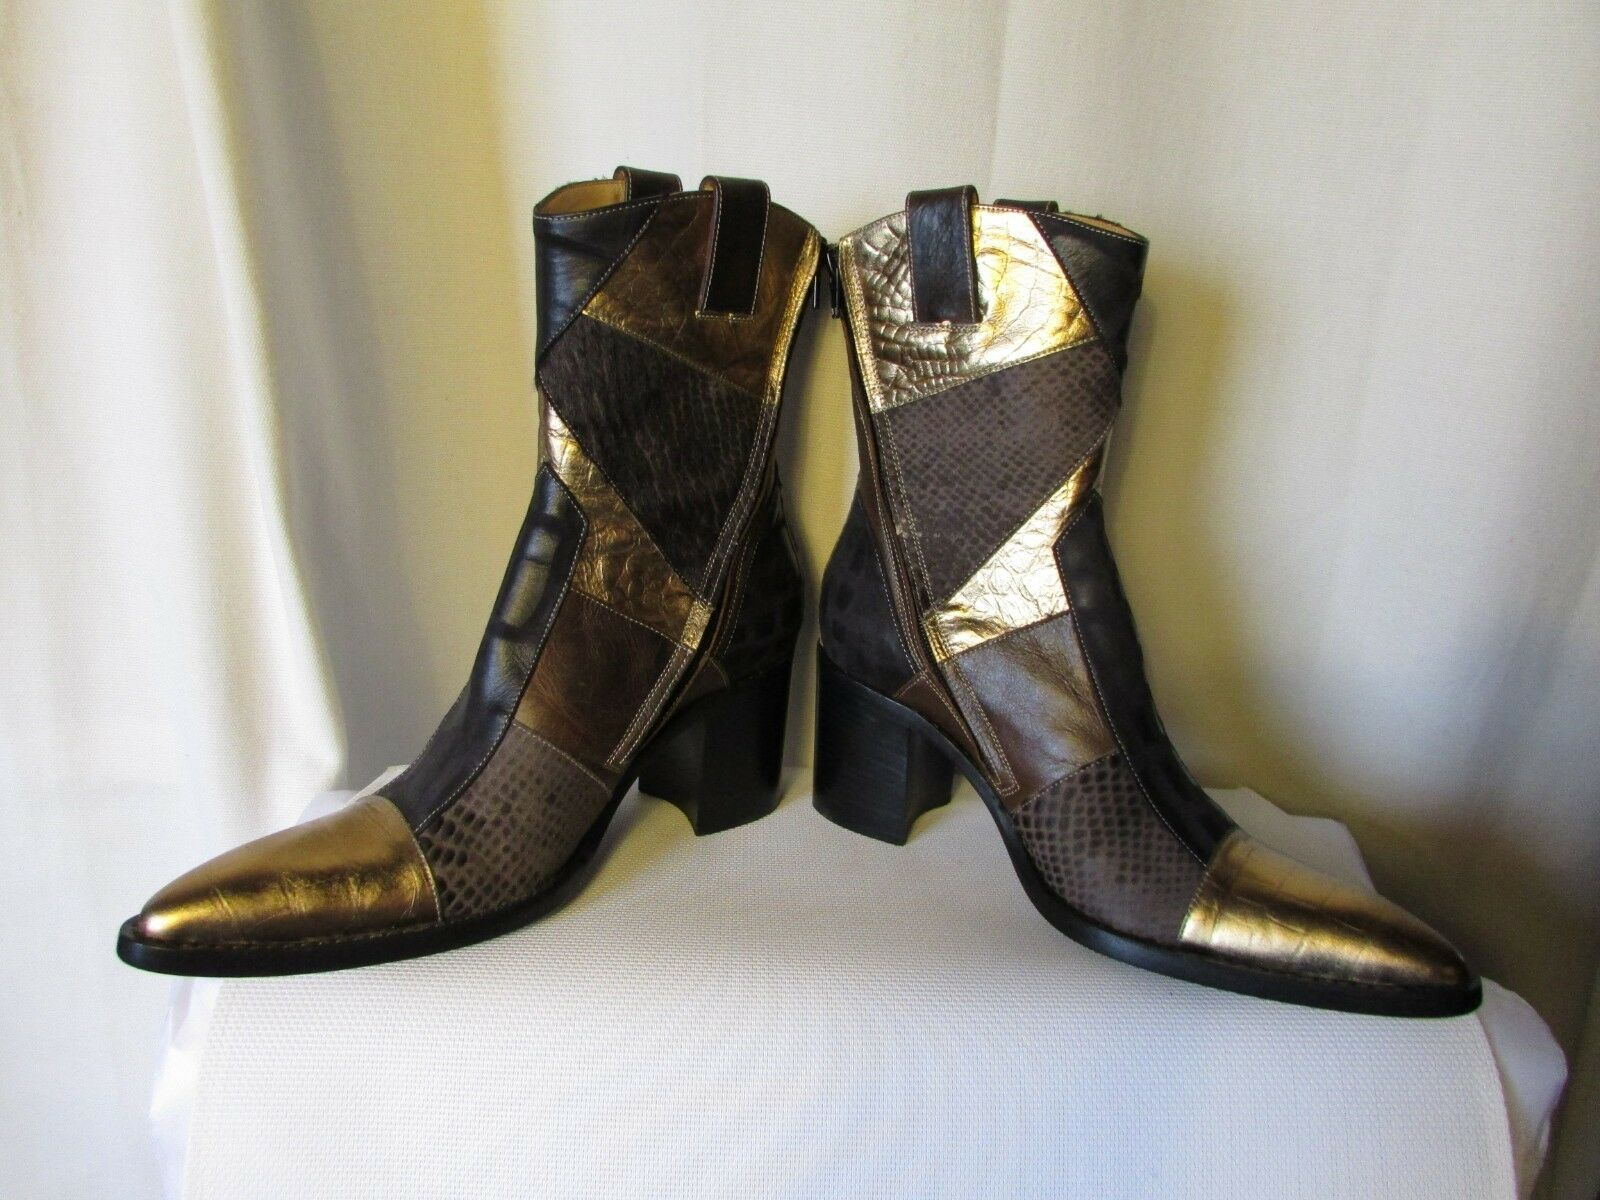 Boots free lance missouri 7 patchzipboo multicoloured leather size 39,5 39,5 39,5 345711